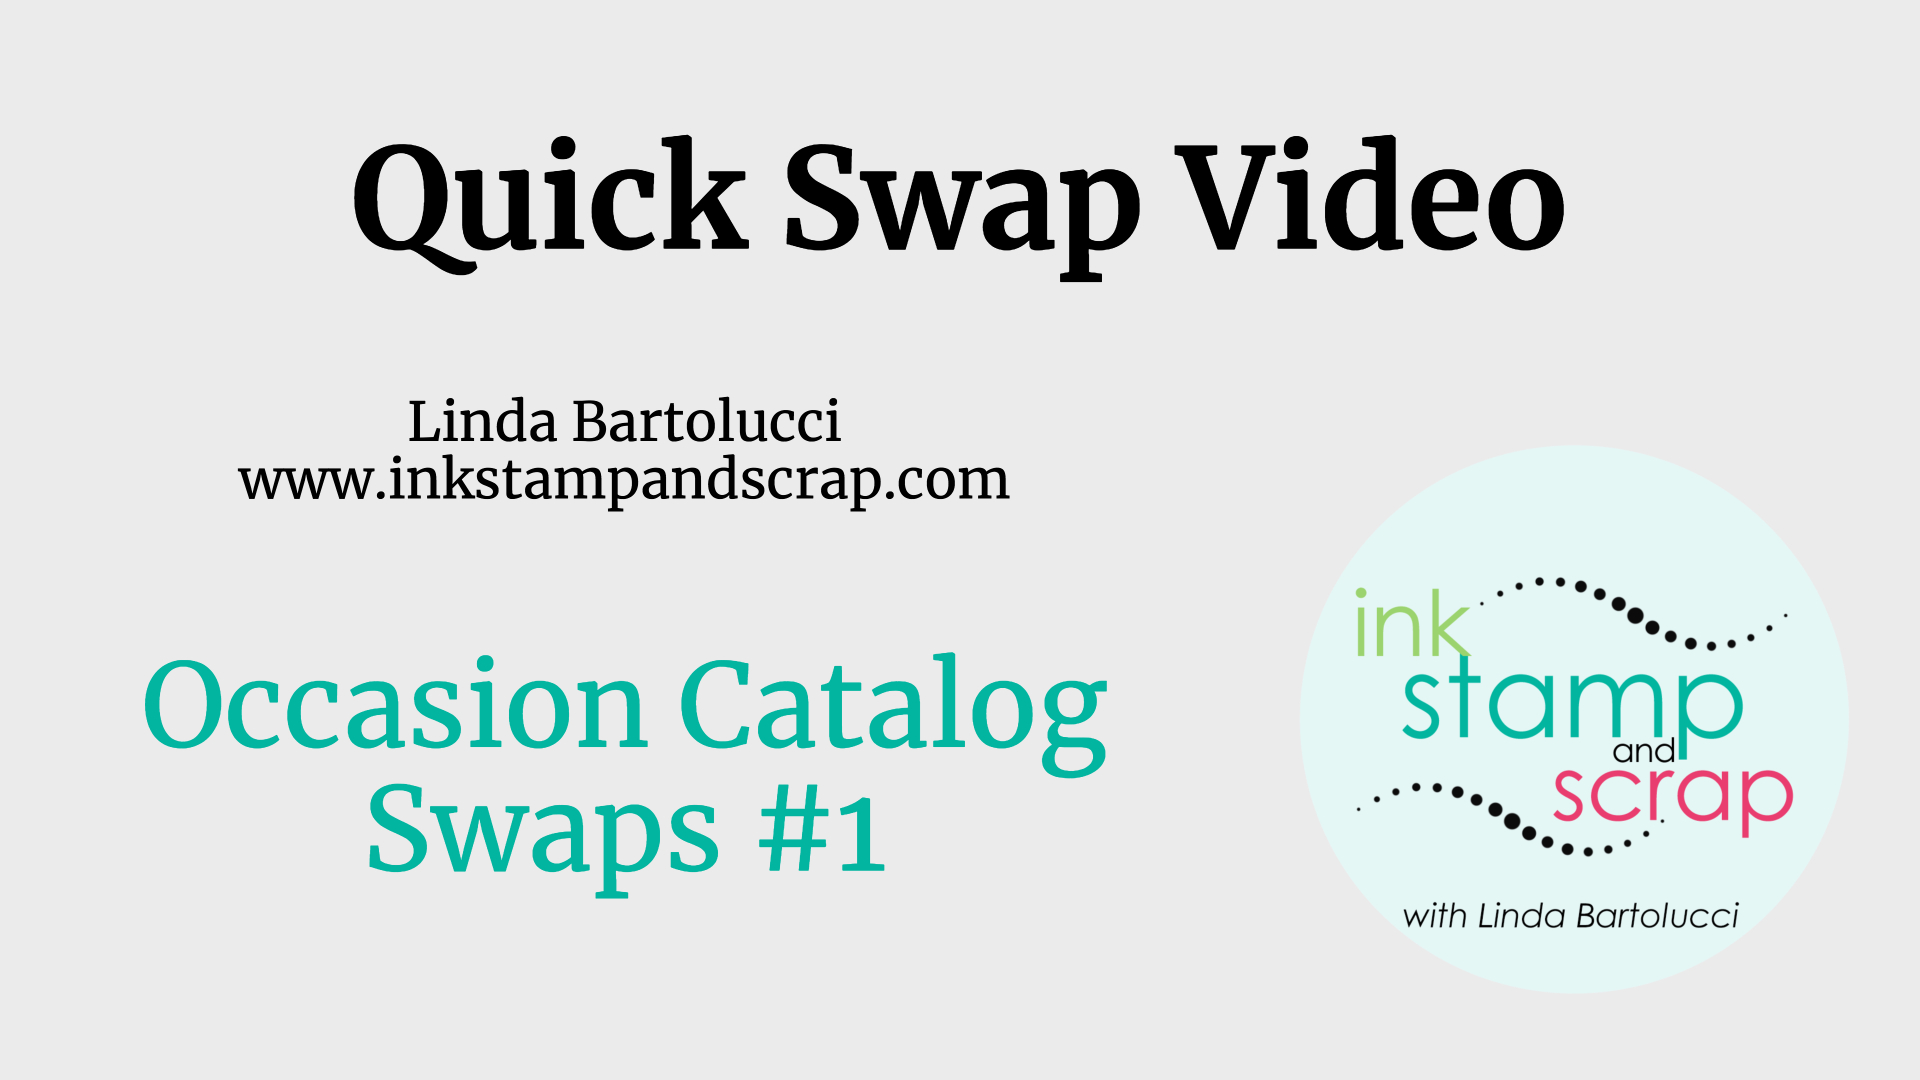 Quick Swap Video – Occasions Catalog Part 1